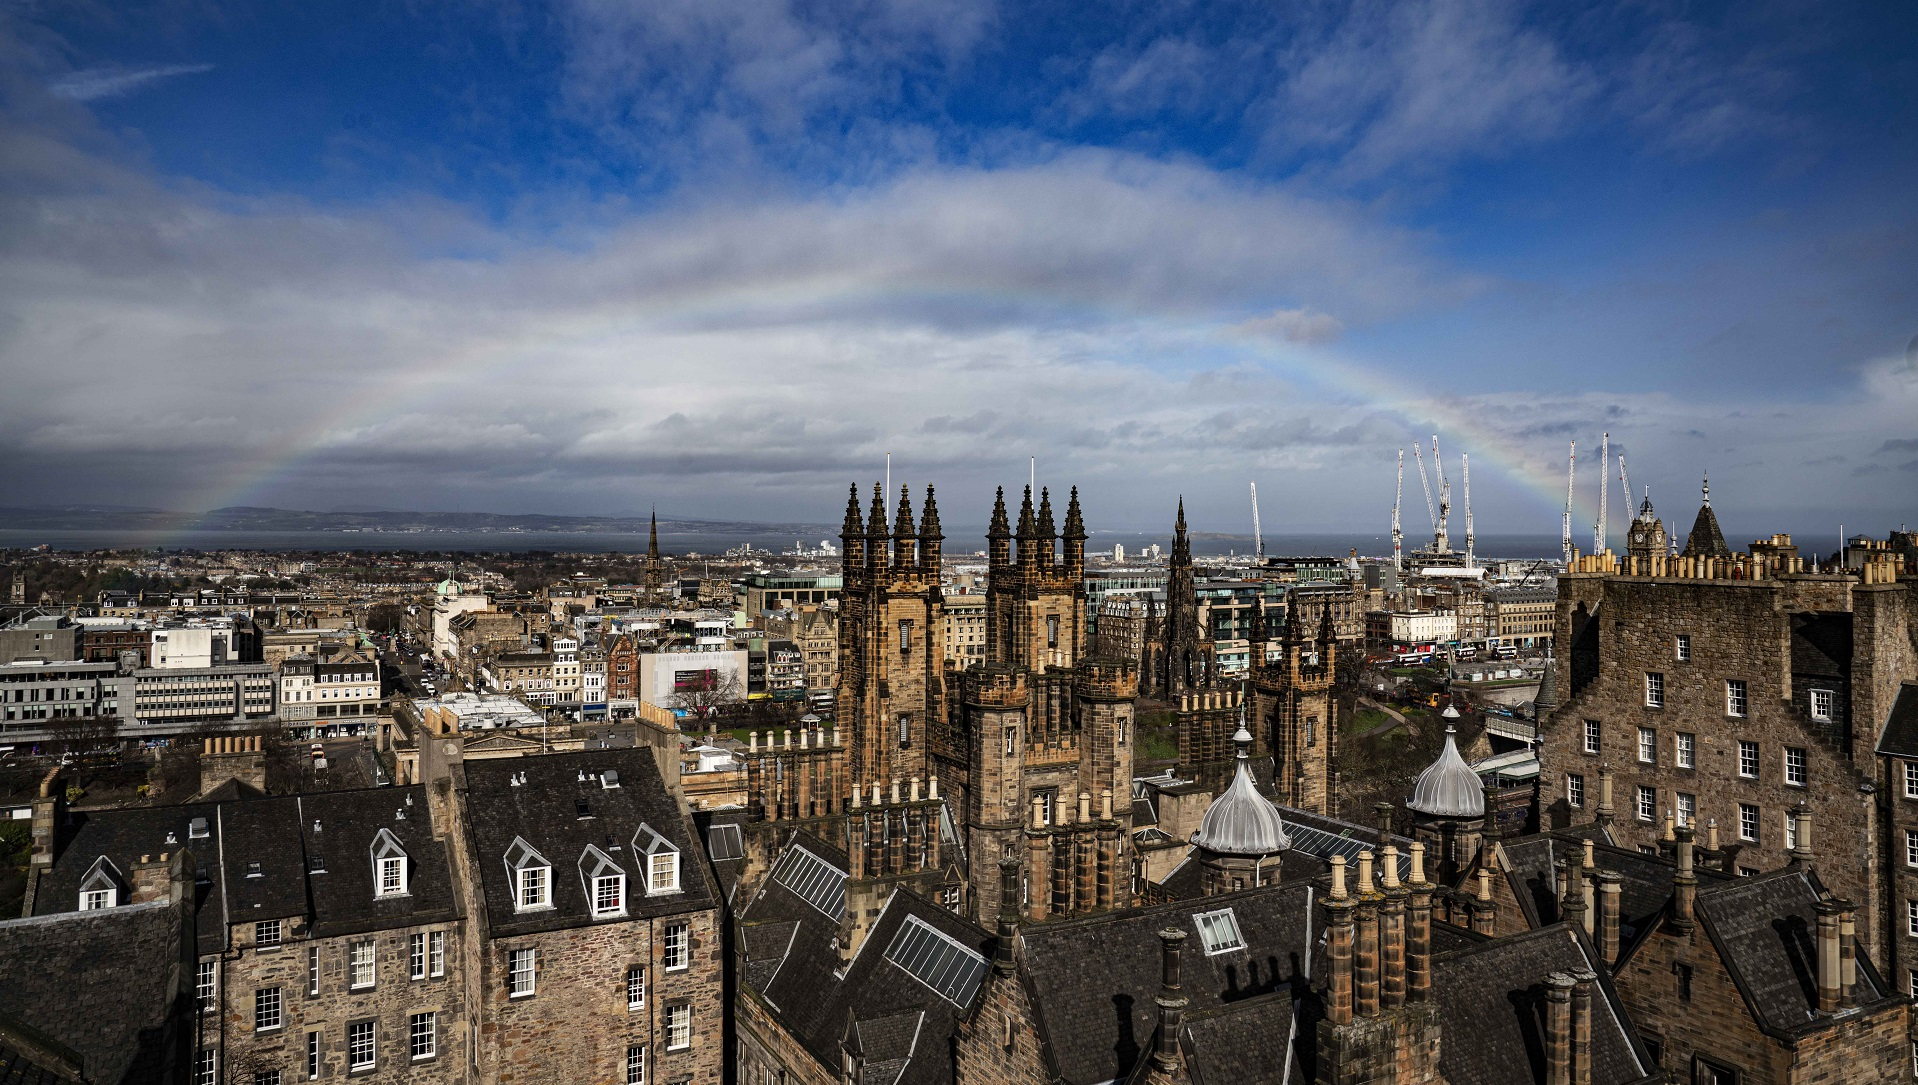 Rainbow over Edinburgh - background